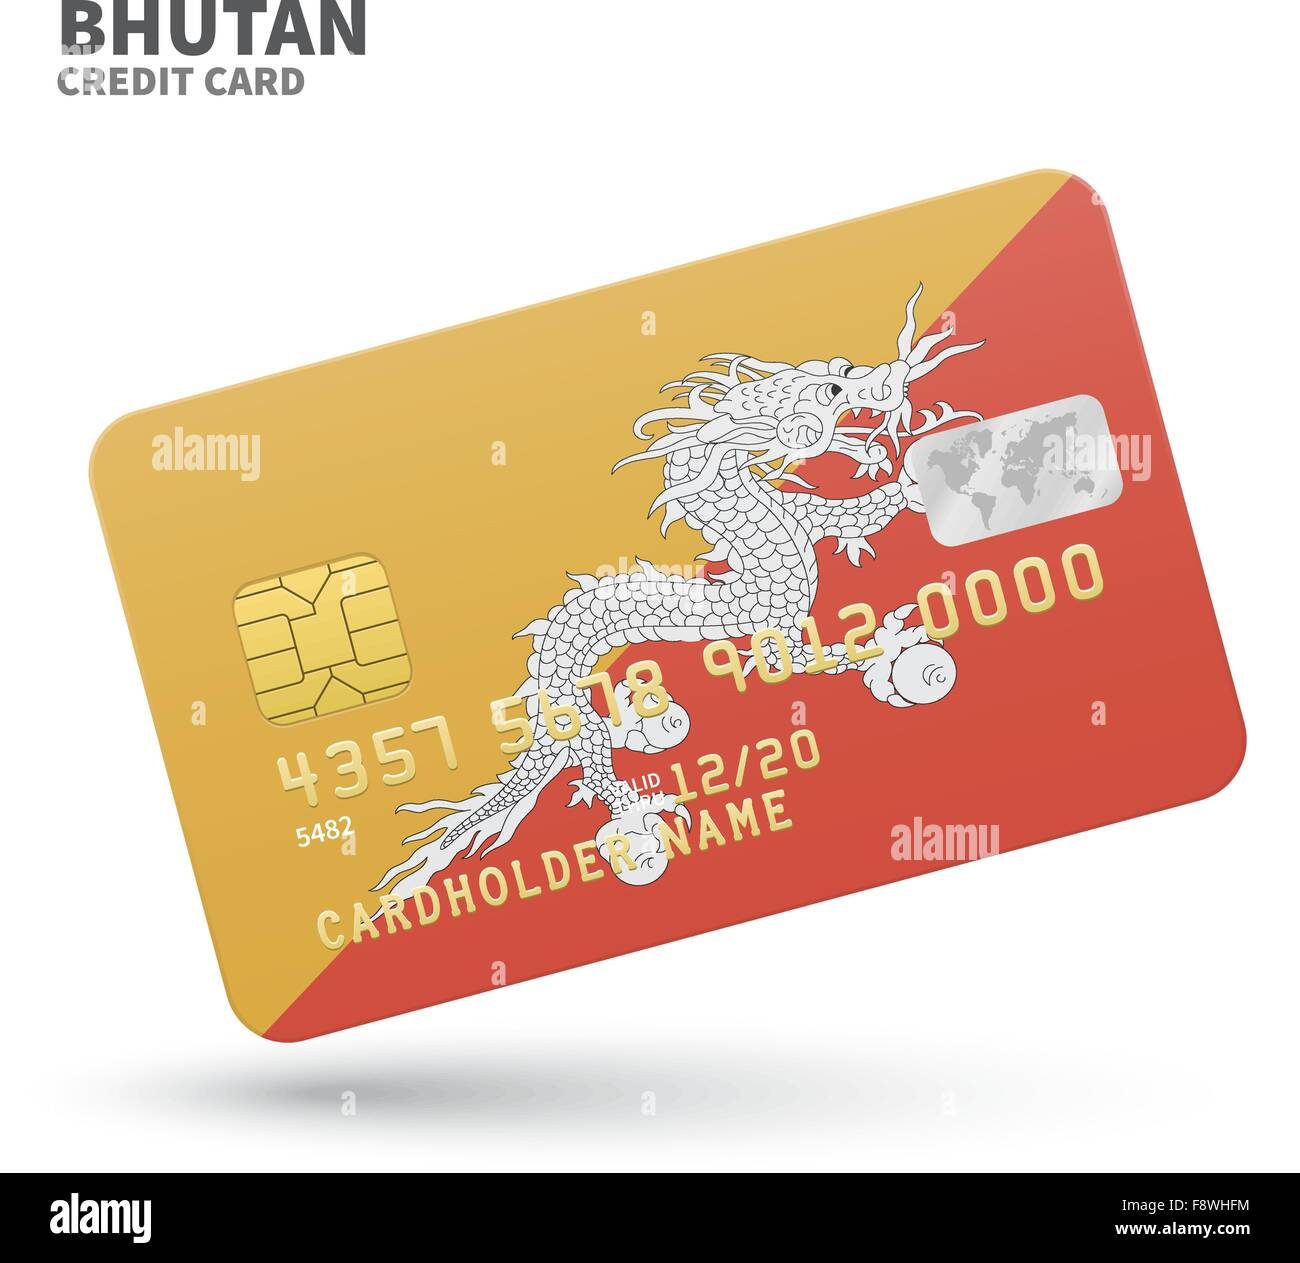 Credit card with Bhutan flag background for bank, presentations ...